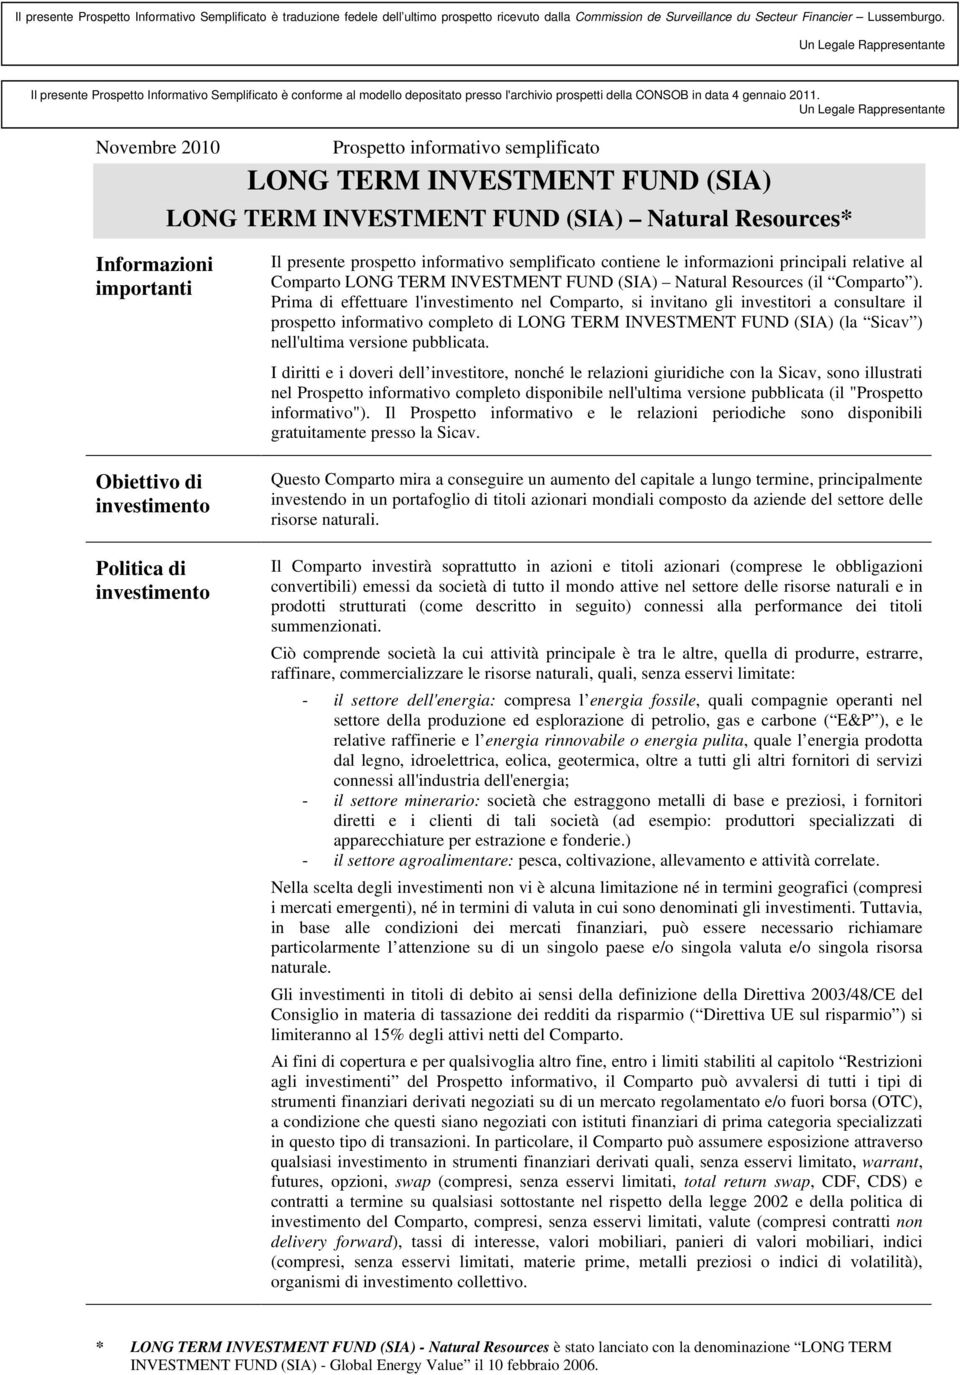 Un Legale Rappresentante Novembre 2010 Prospetto informativo semplificato LONG TERM INVESTMENT FUND (SIA) LONG TERM INVESTMENT FUND (SIA) Natural Resources* Informazioni importanti Obiettivo di